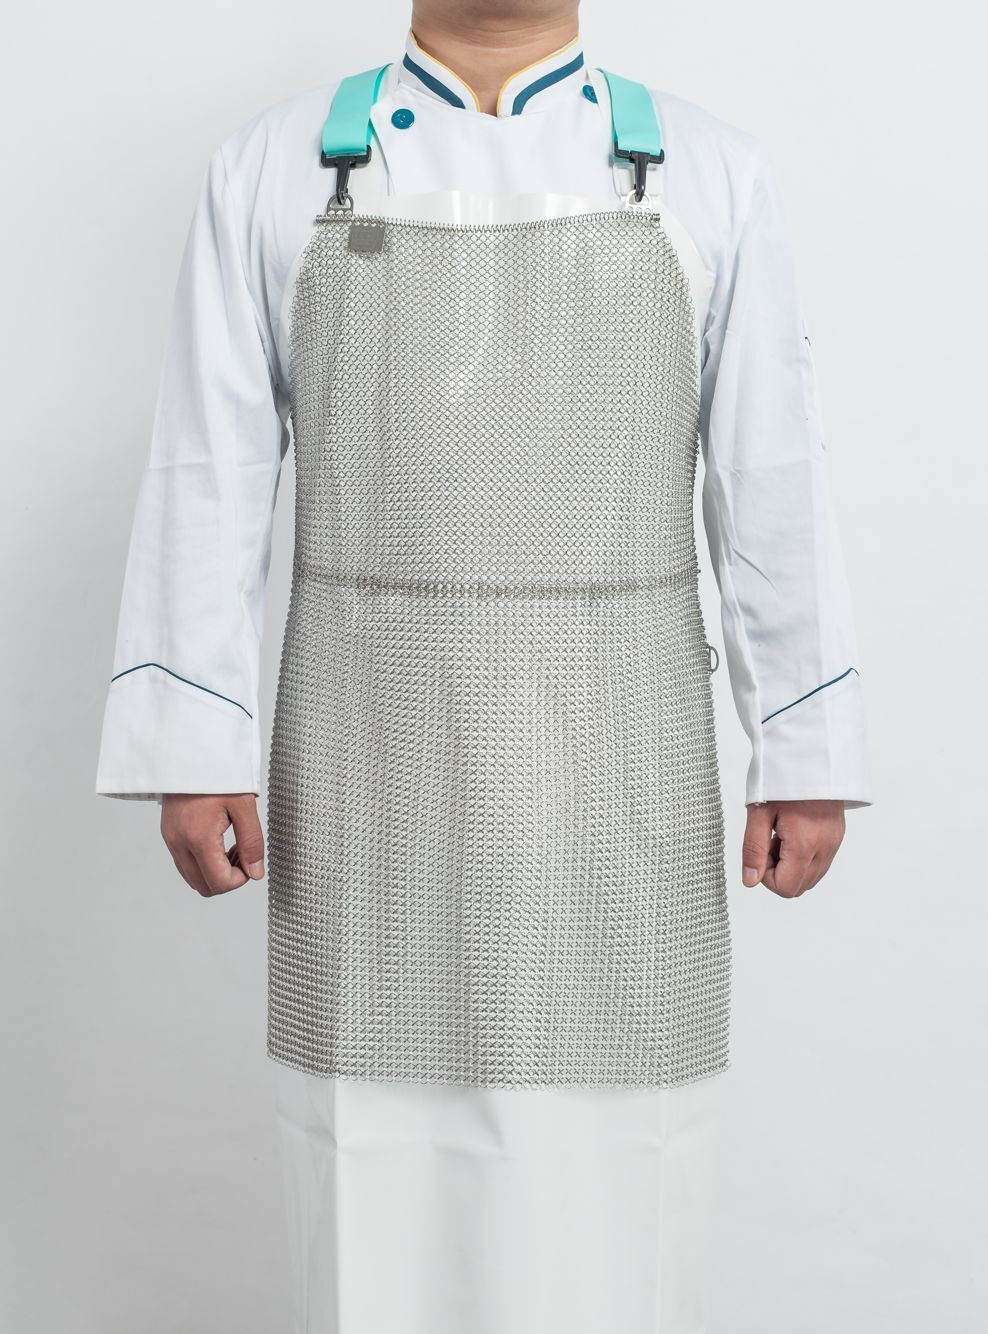 7mm Diameter Cut Resistant Knife Proof Protect Stomach Stainless Steel Chain Mail Butcher Apron